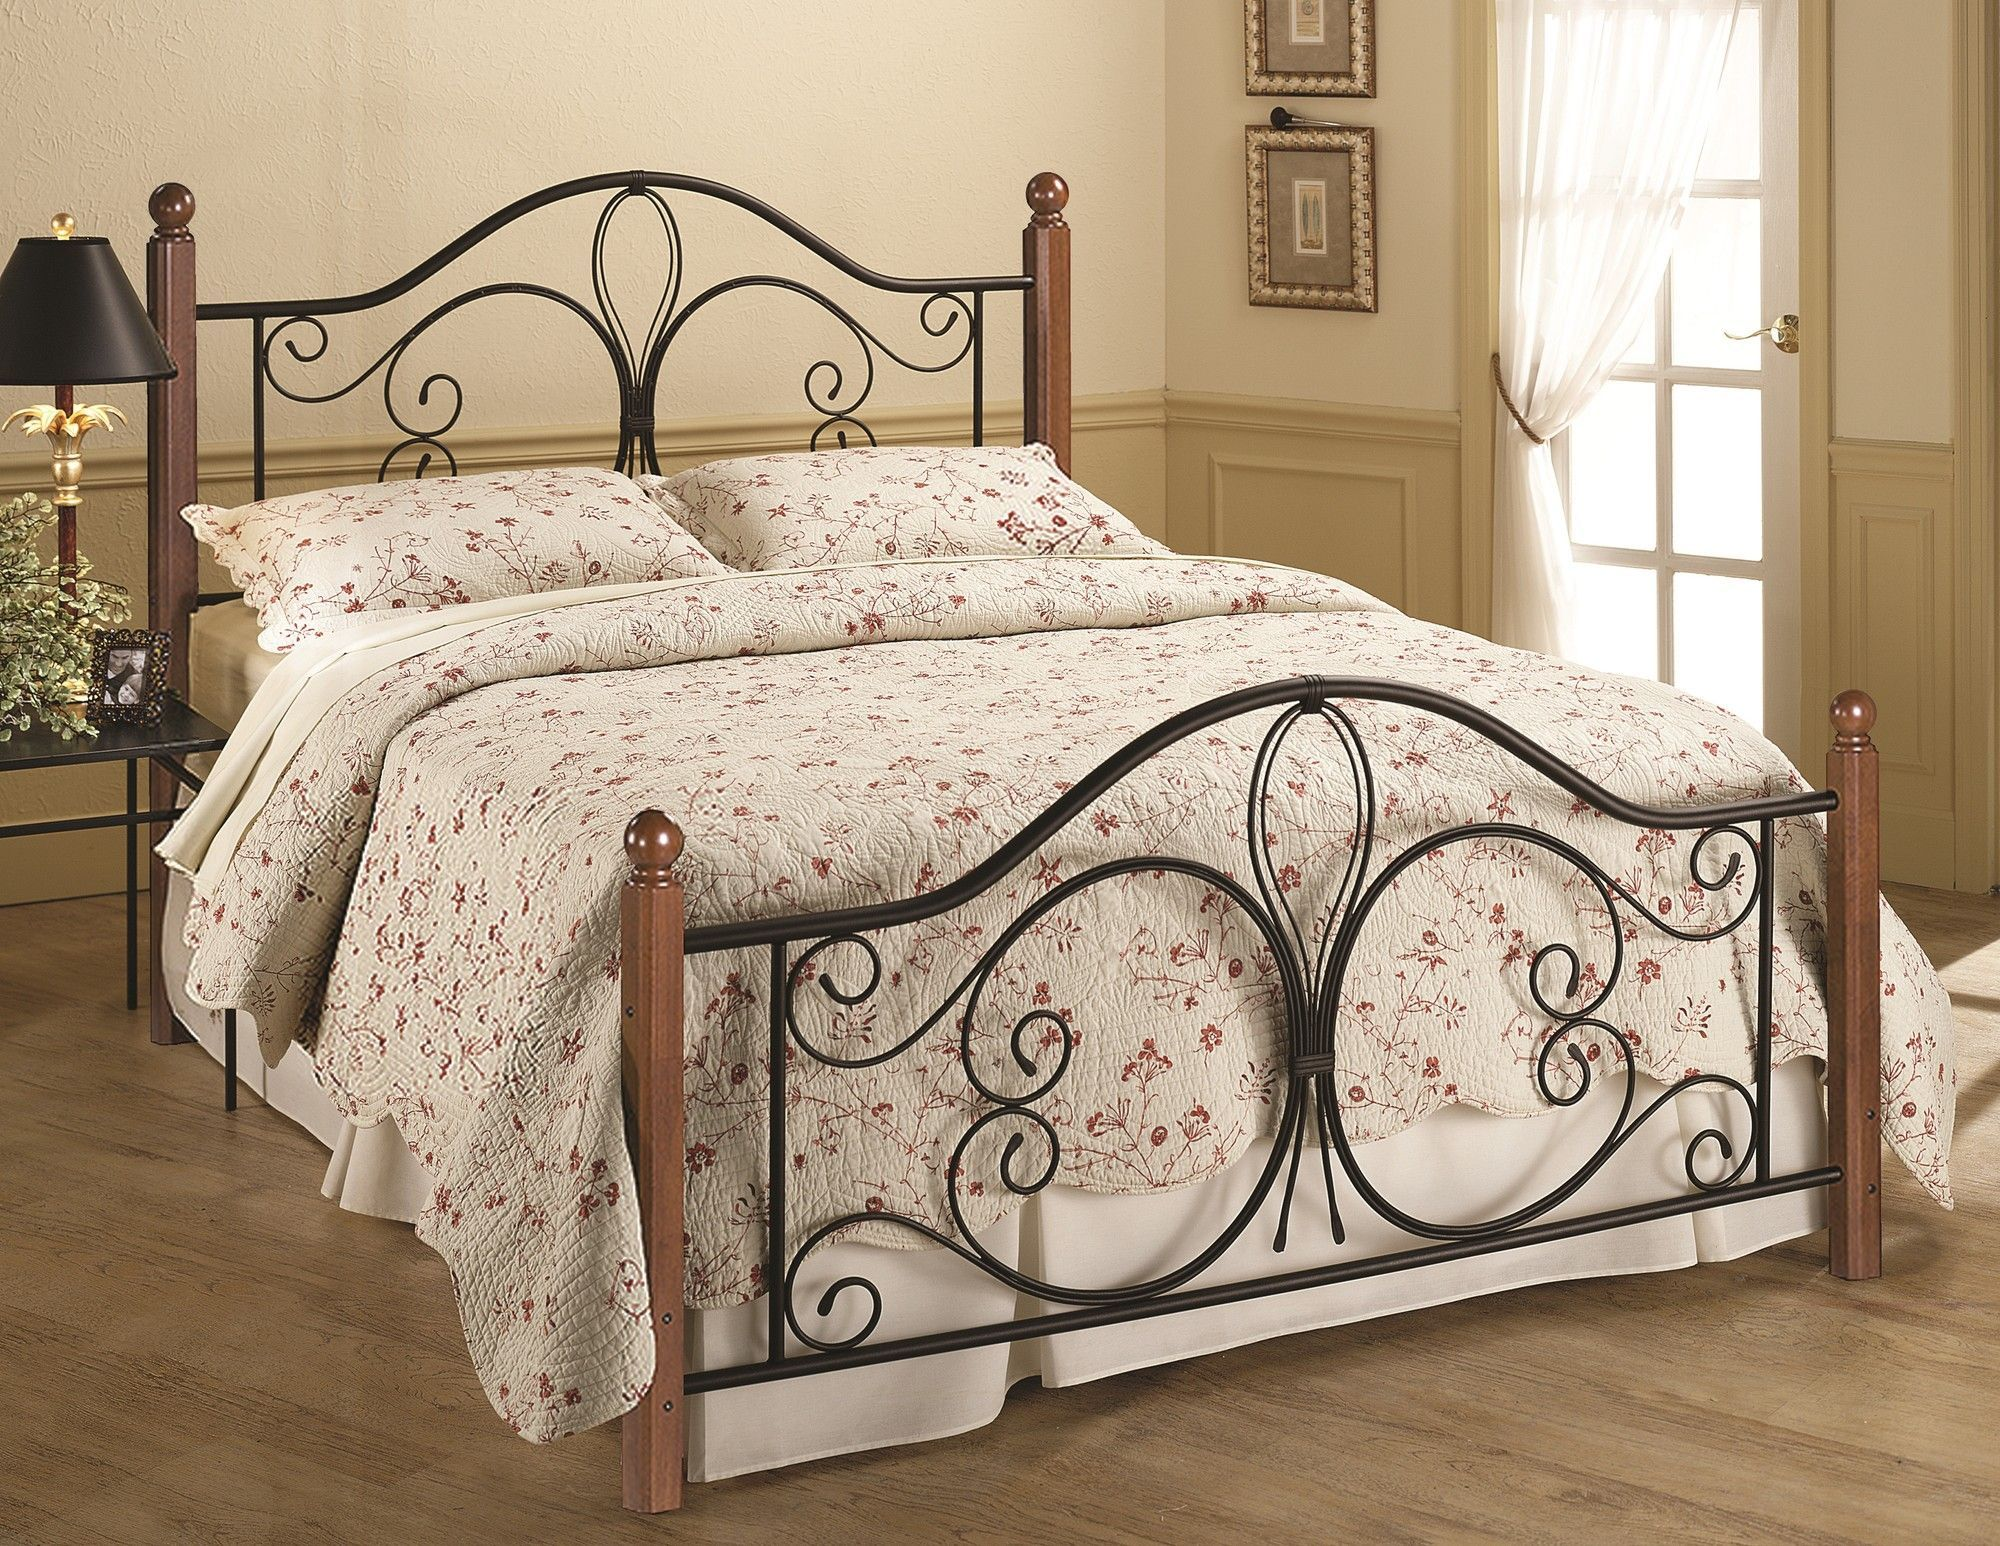 Panel bed products pinterest products